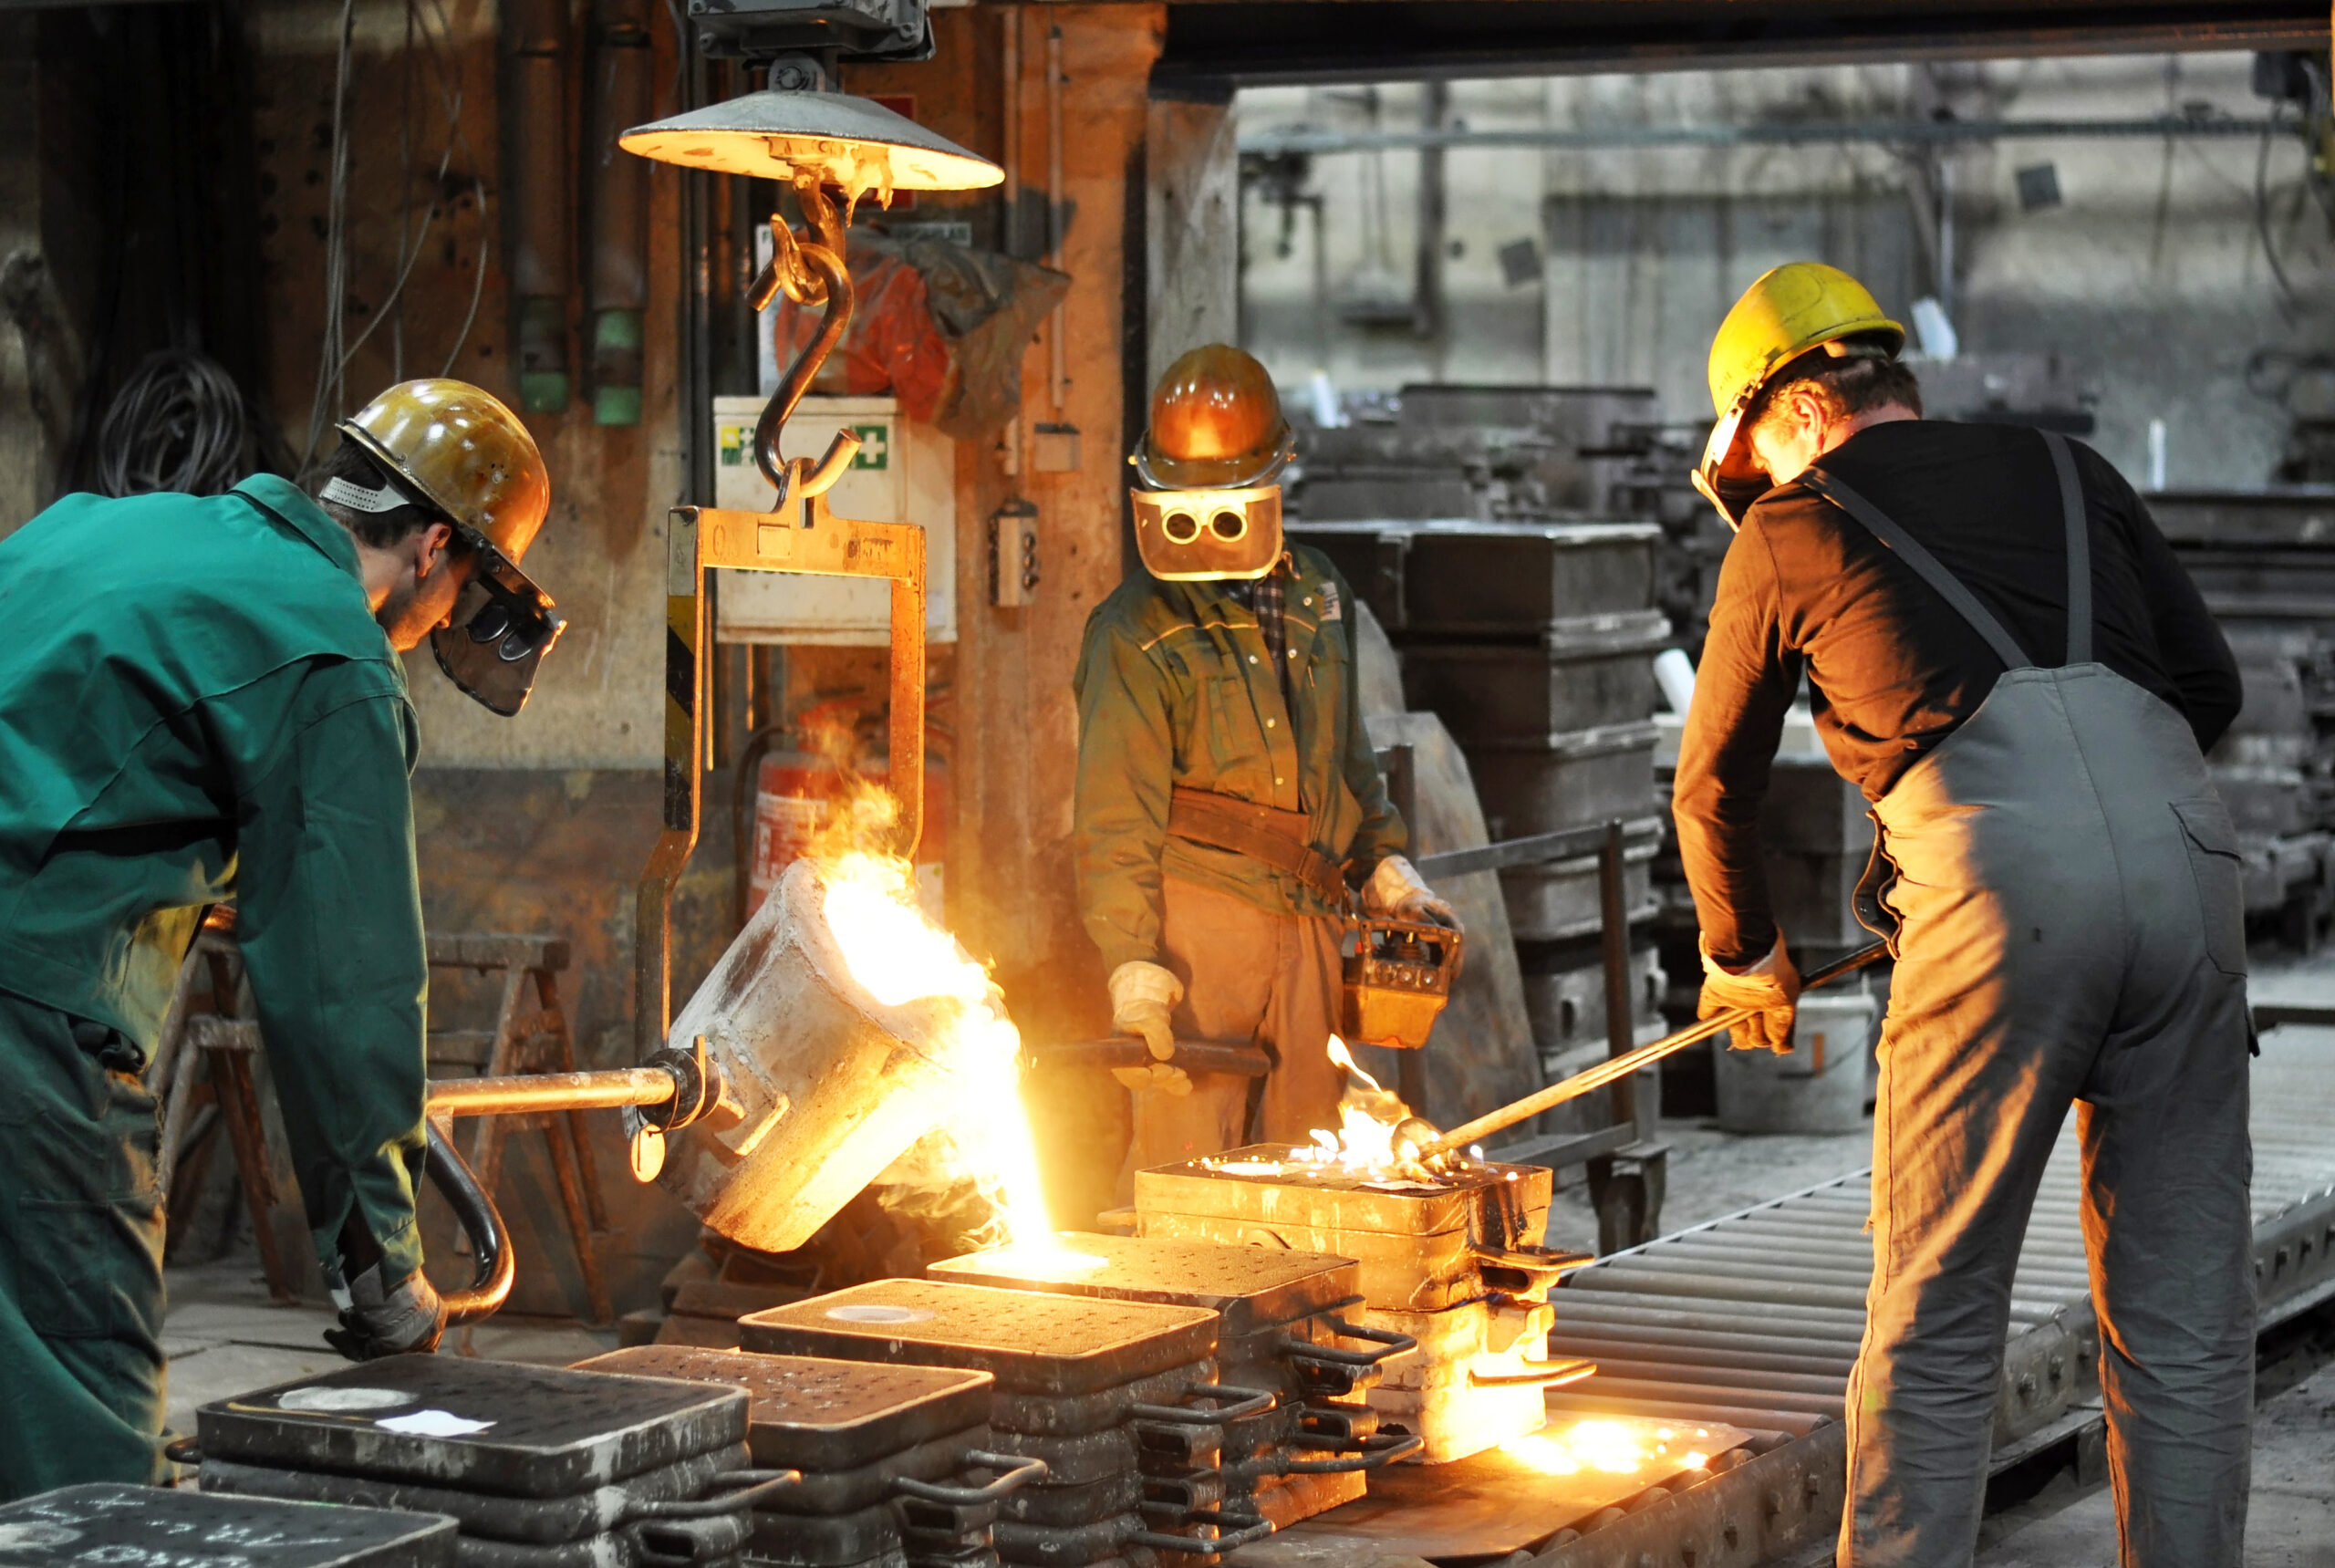 Group,Of,Workers,In,A,Foundry,At,The,Melting,Furnace